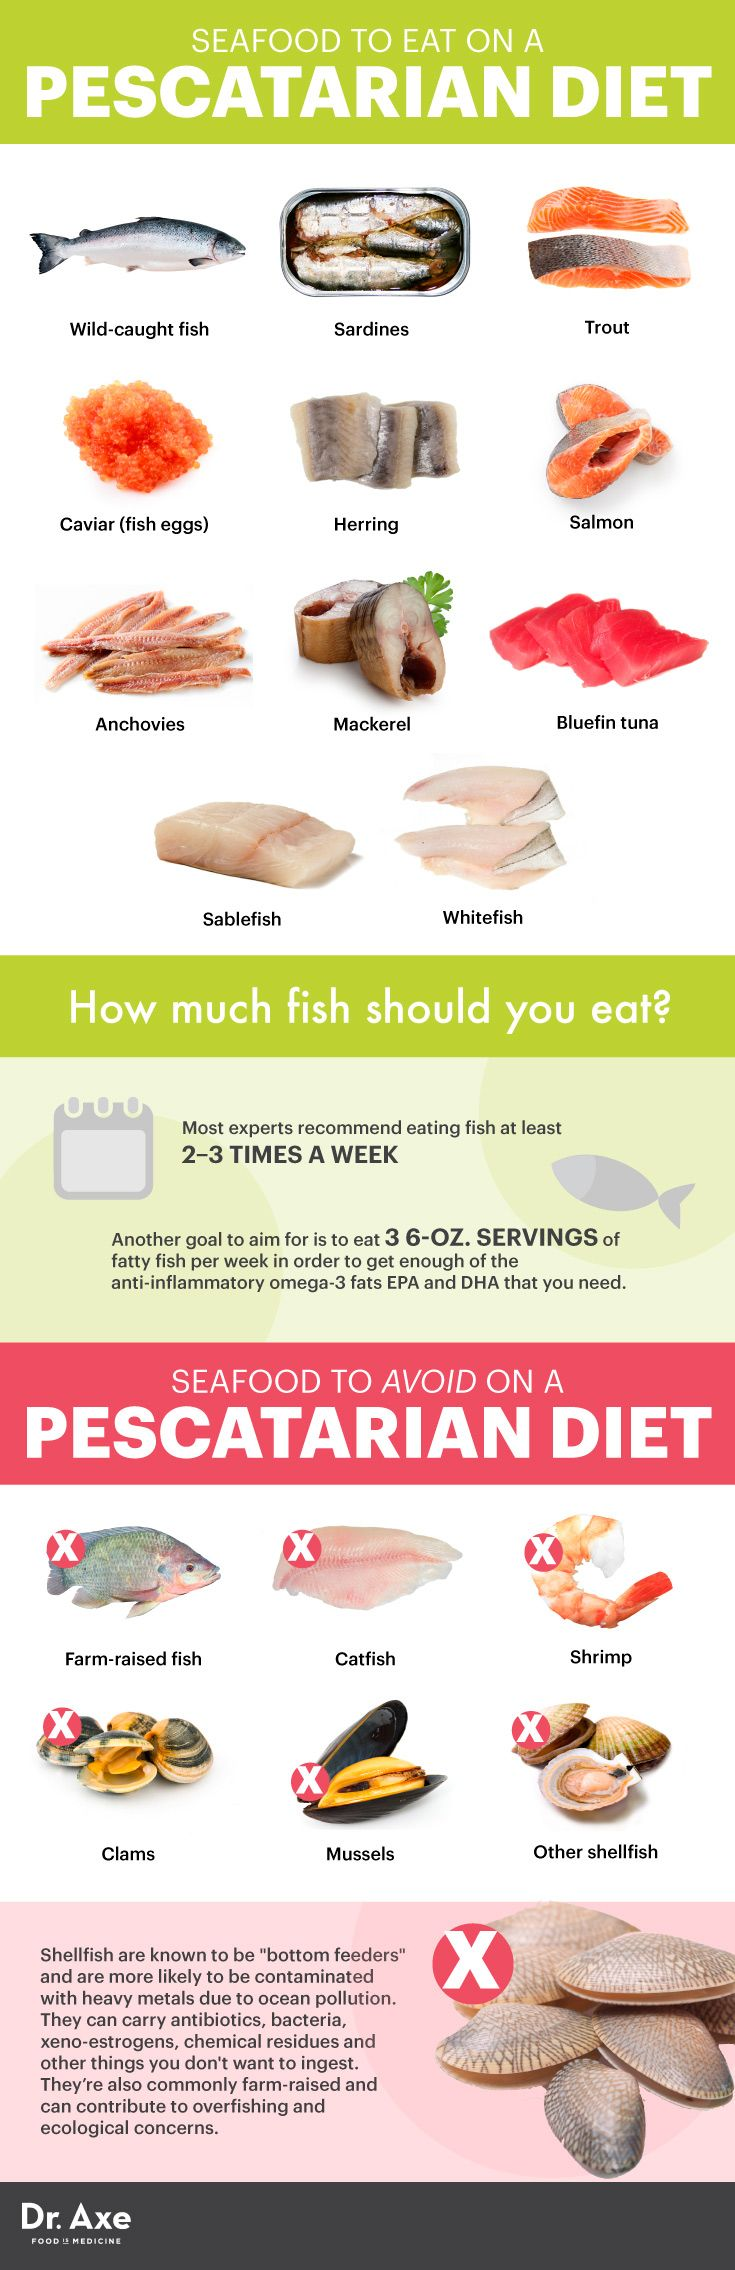 What Is A Pescatarian Diet Pros Cons What To Eat And More Dr Axe Pescatarian Diet Pescetarian Recipes Pescatarian Lifestyle